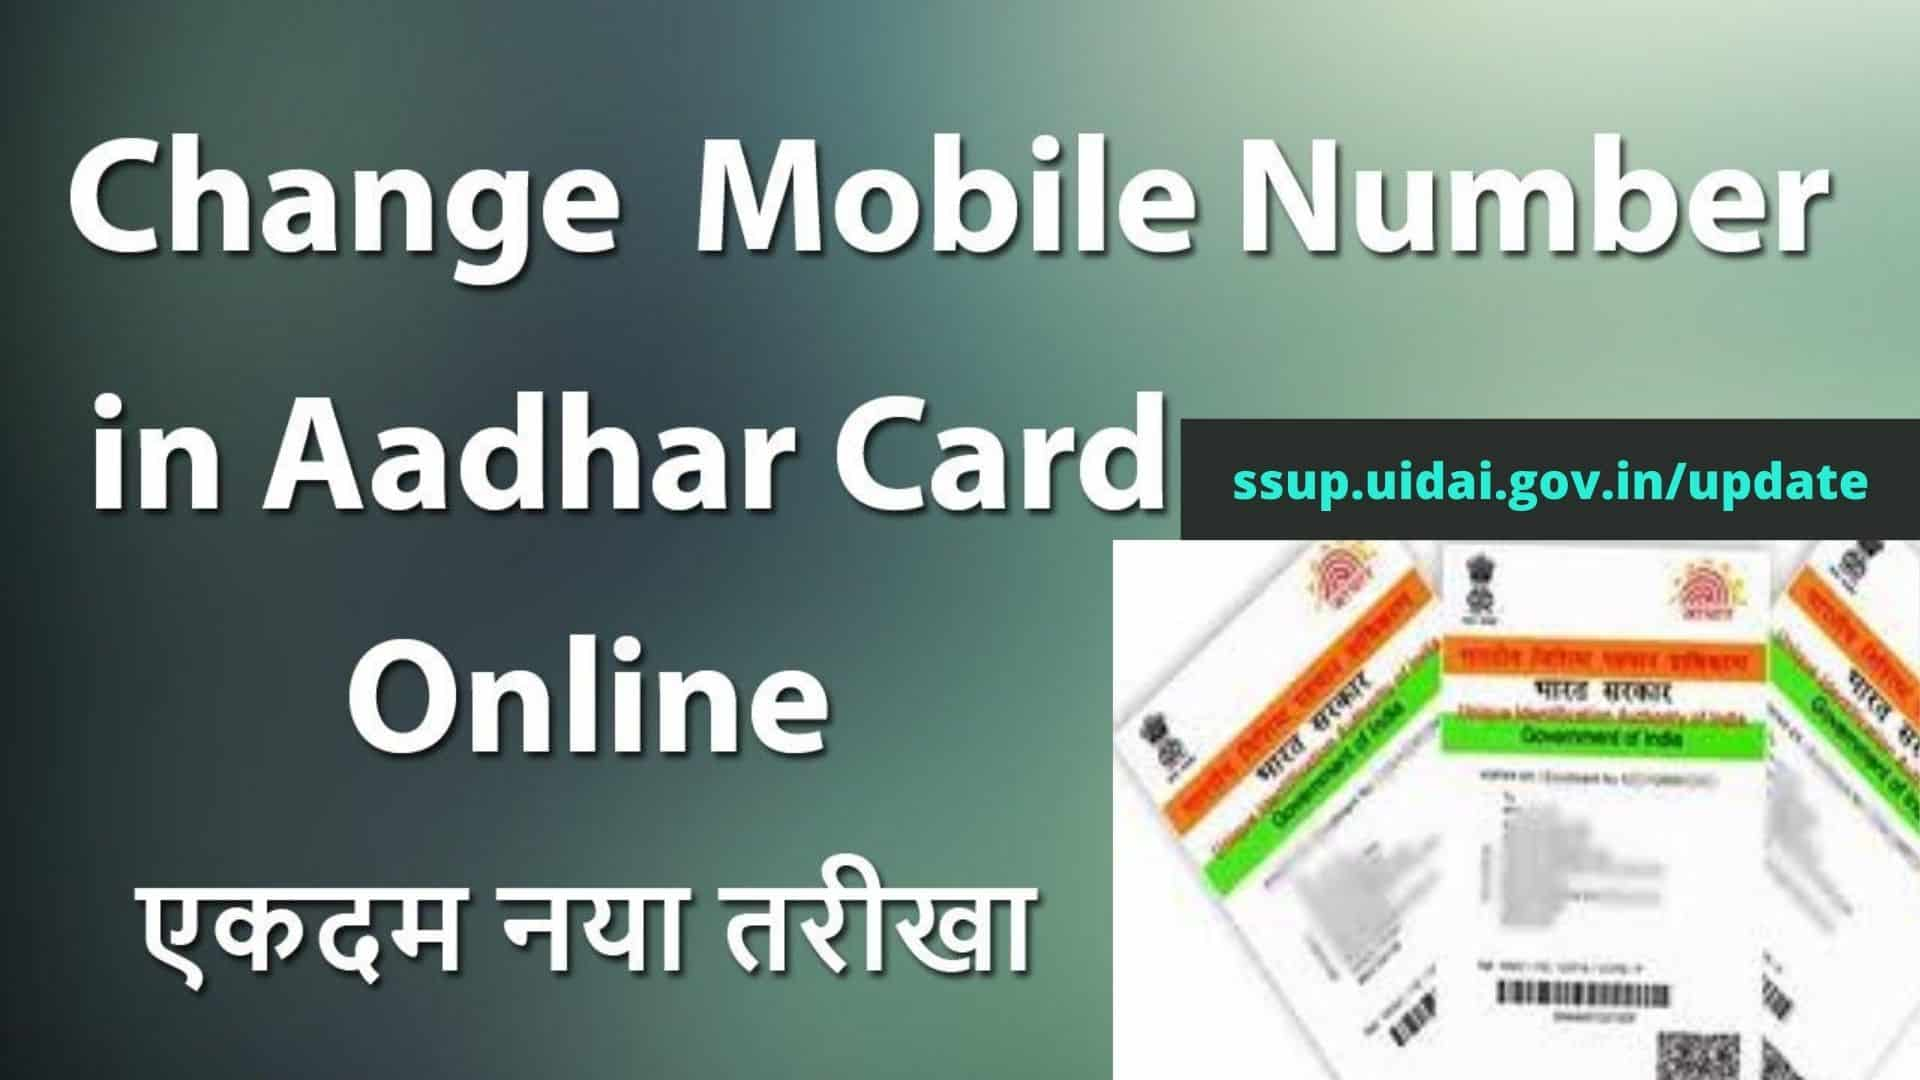 How To Change Mobile Number In Aadhar Card Online